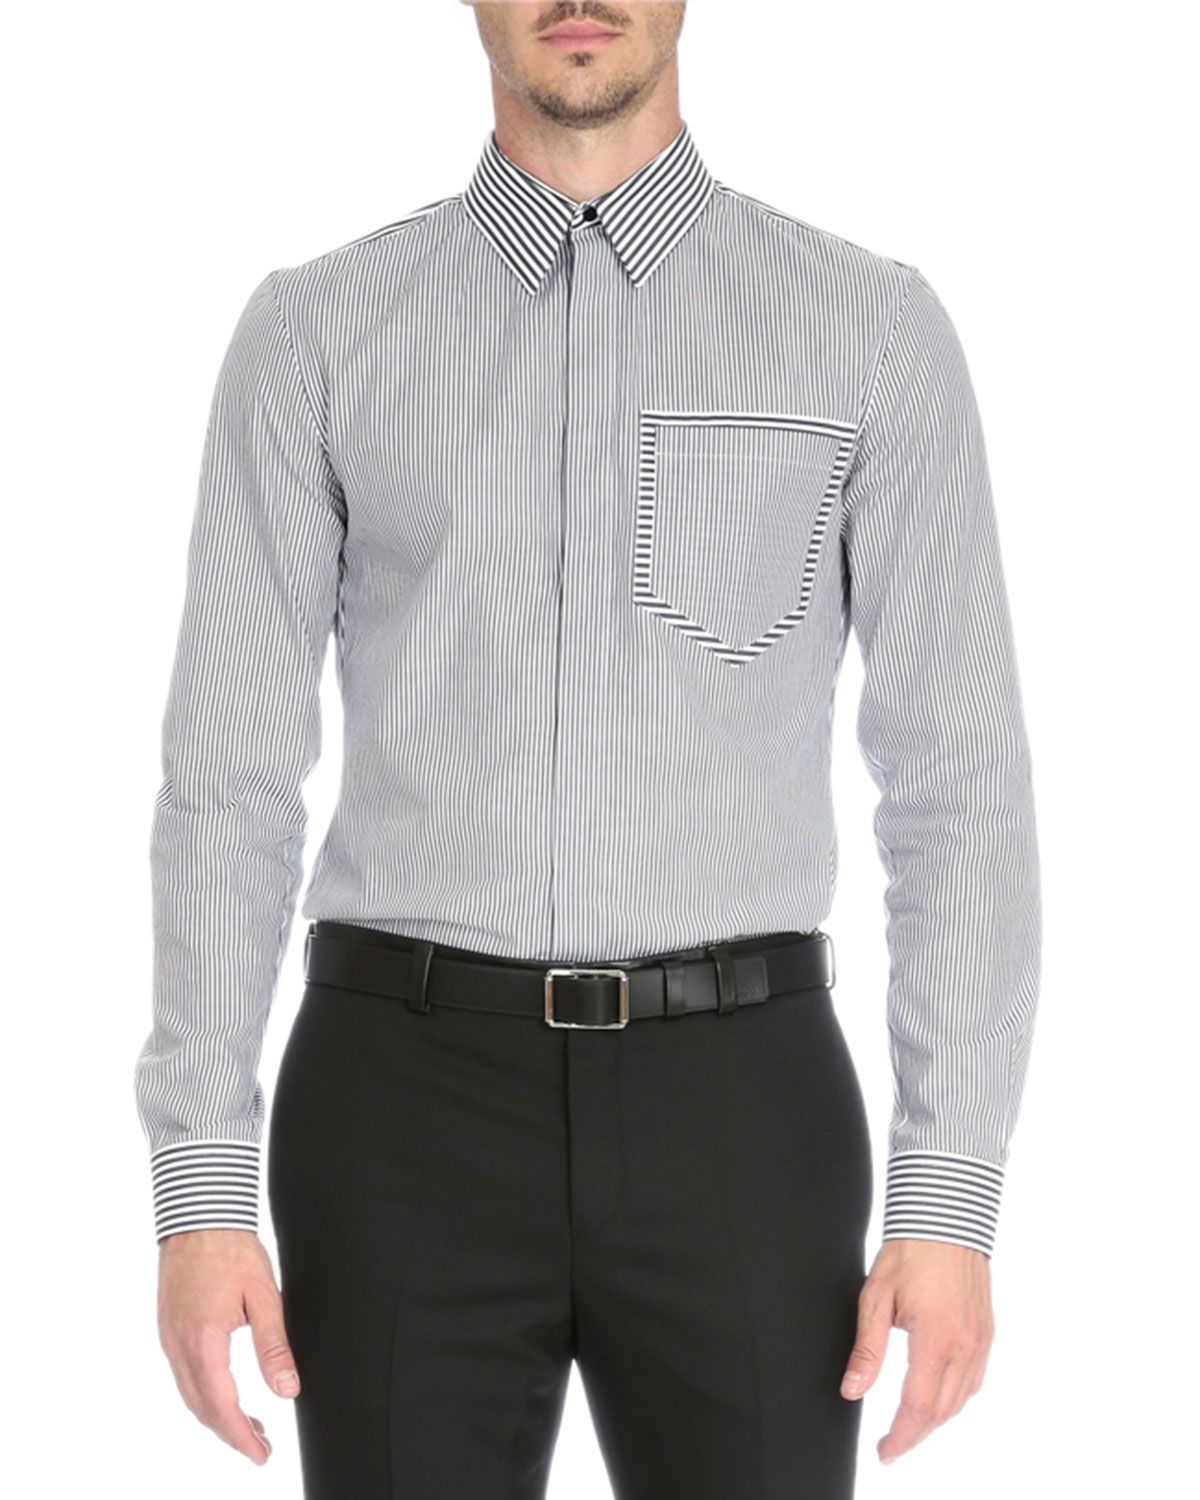 Striped Sport Shirt with Pocket, Black